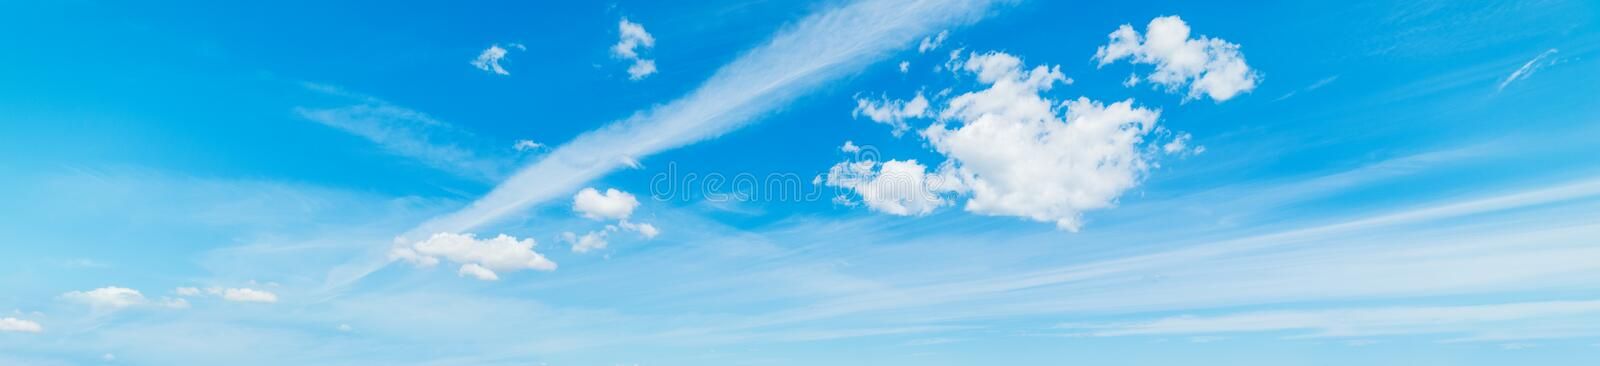 Small clouds and blue sky. Blue sky with white, soft clouds stock photo